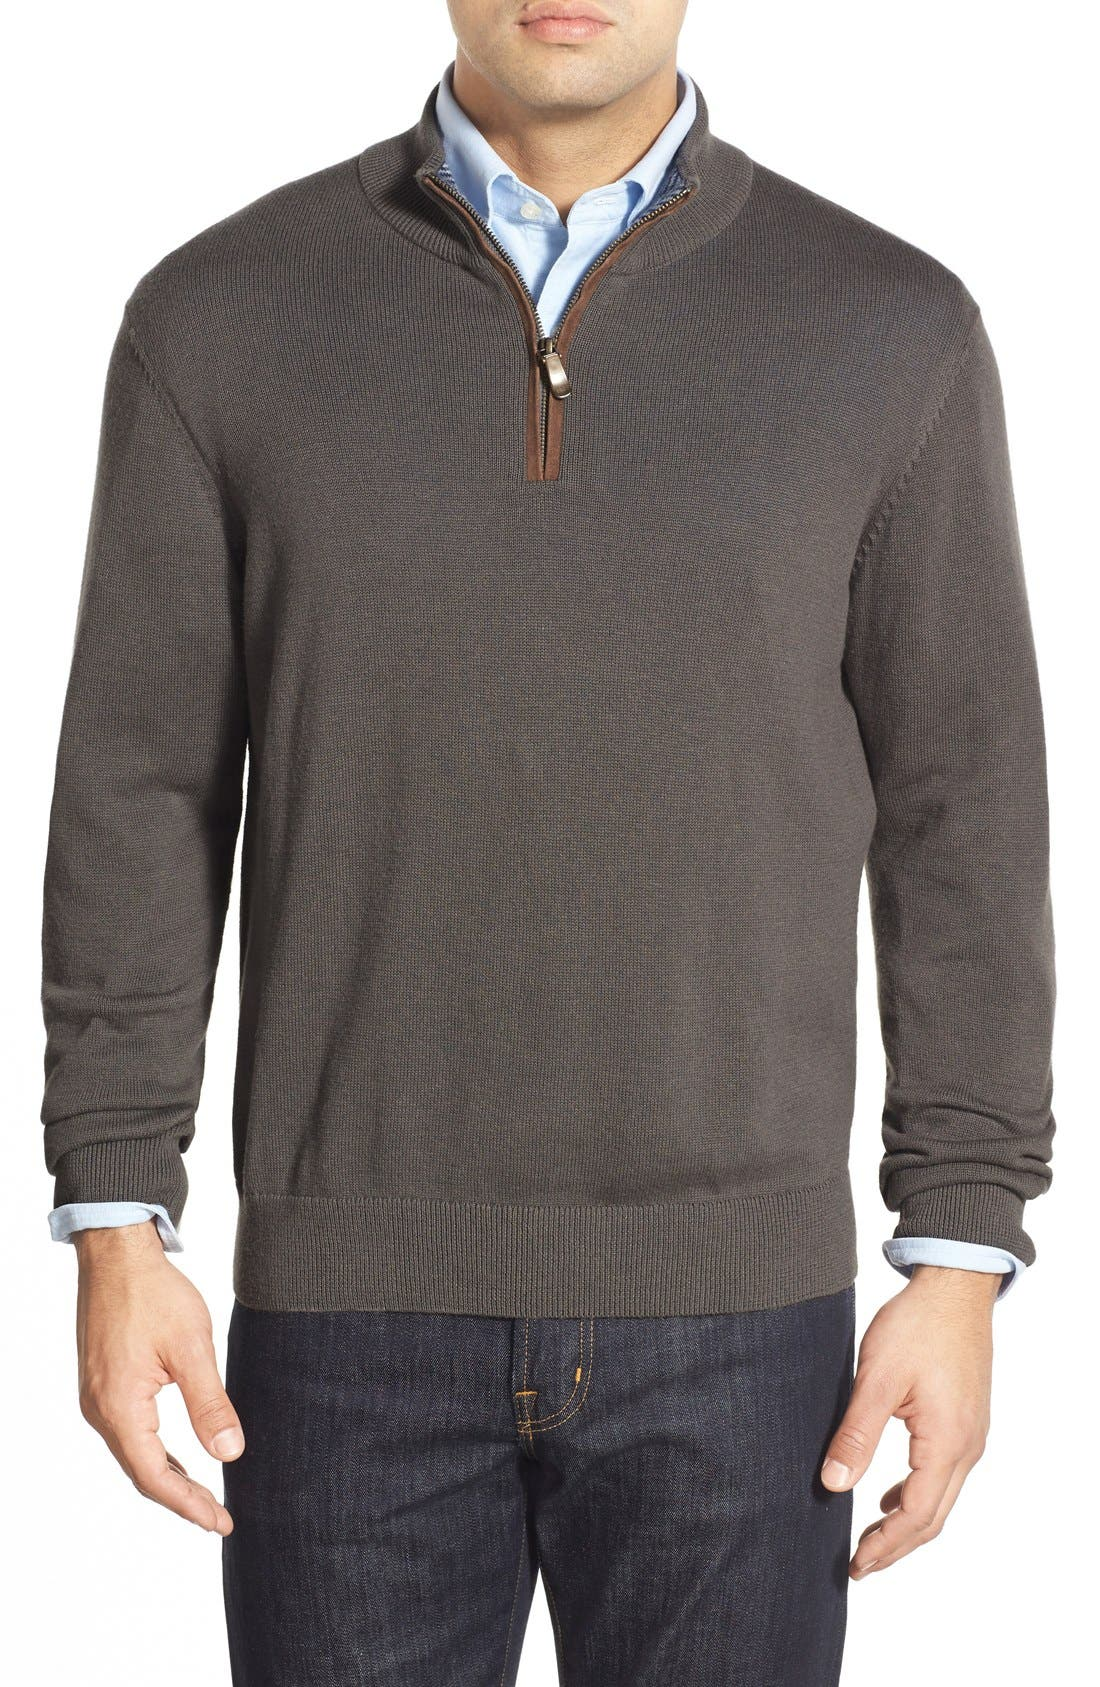 'Round Hill' Quarter Zip Sweater with Suede Elbow Patches,                             Main thumbnail 1, color,                             025